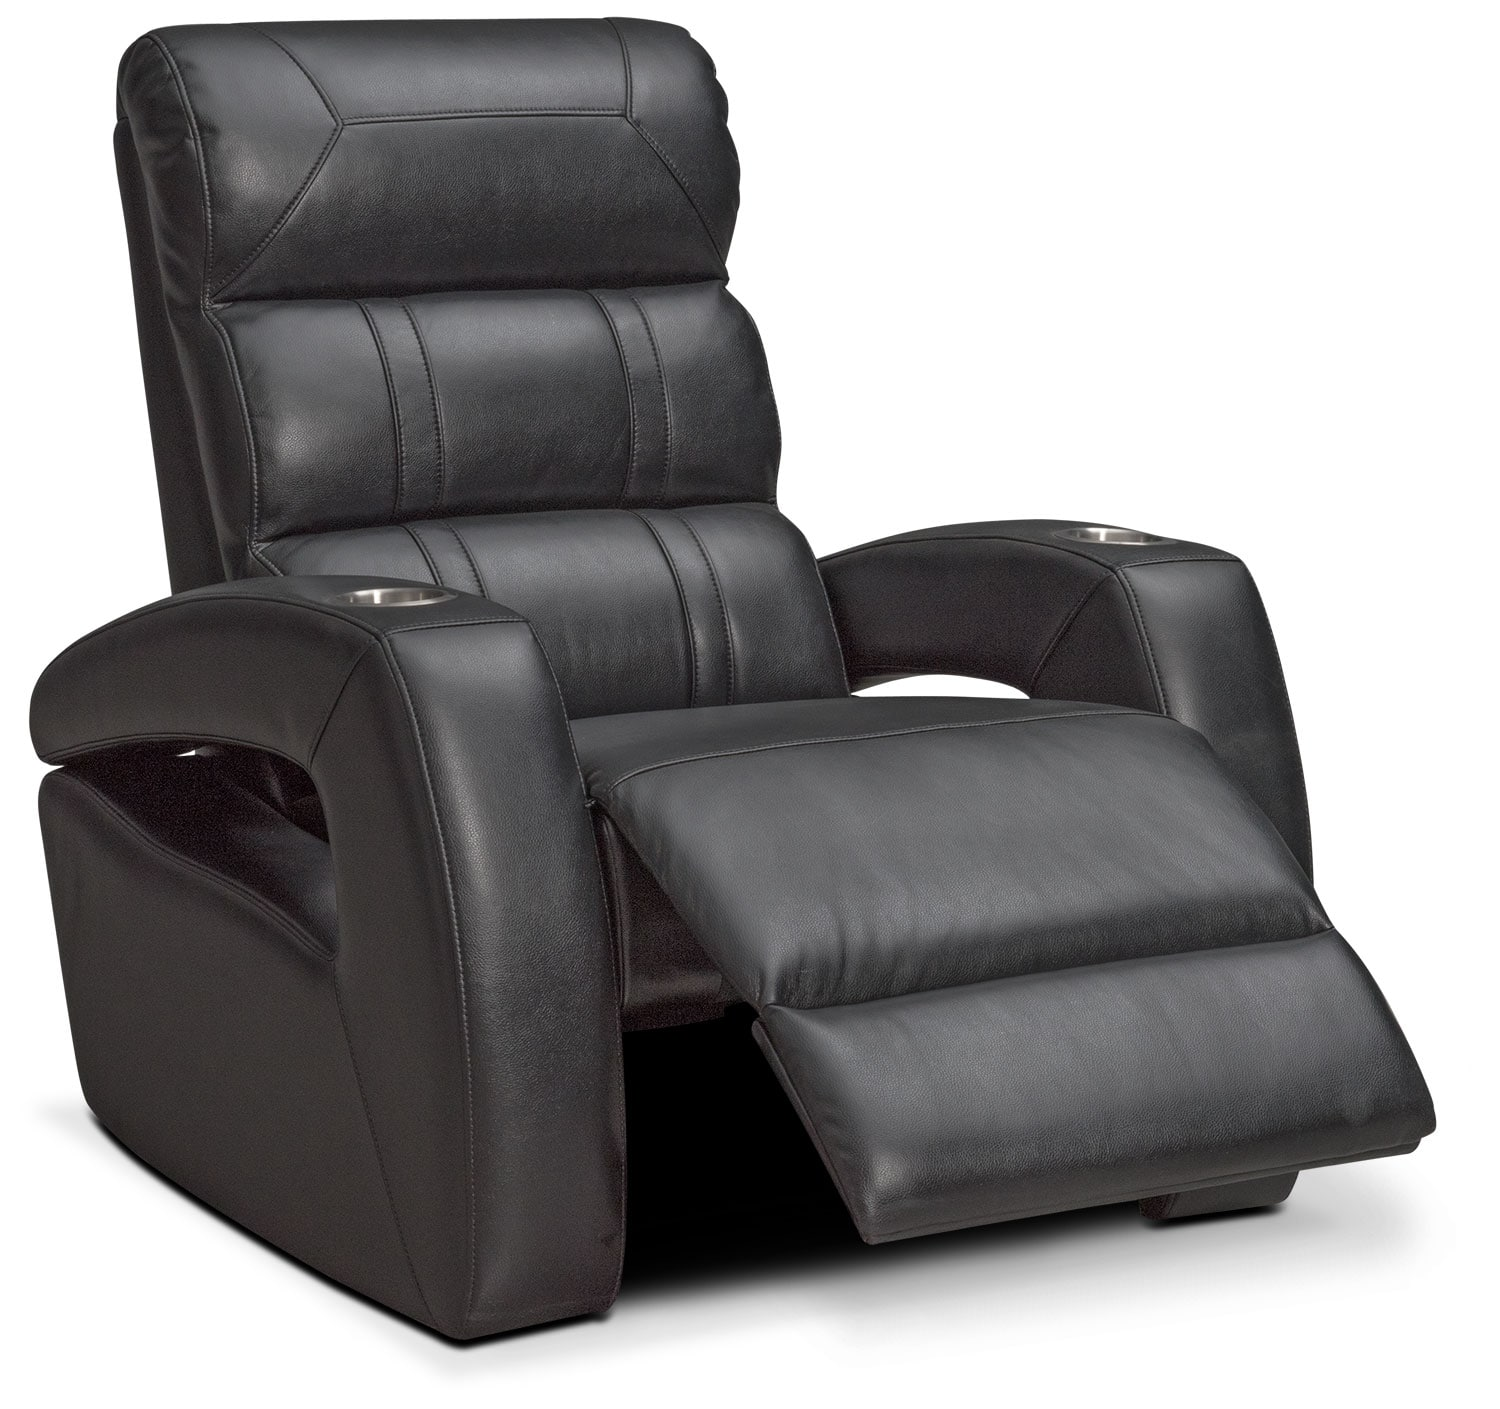 Easy chair recliner - Bravo Power Recliner Black By One80